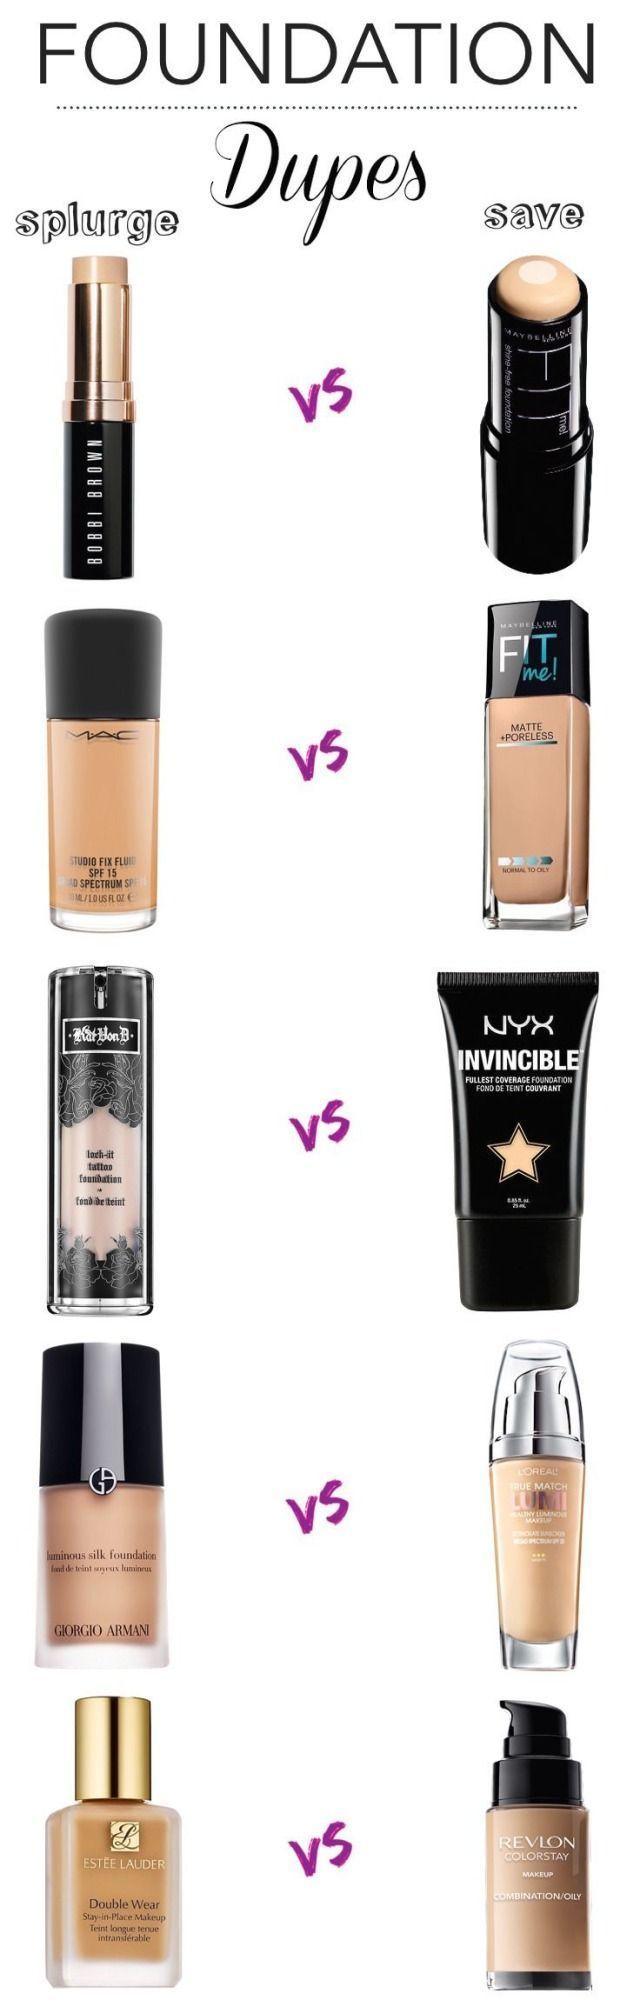 Wedding - High End Foundation Dupes